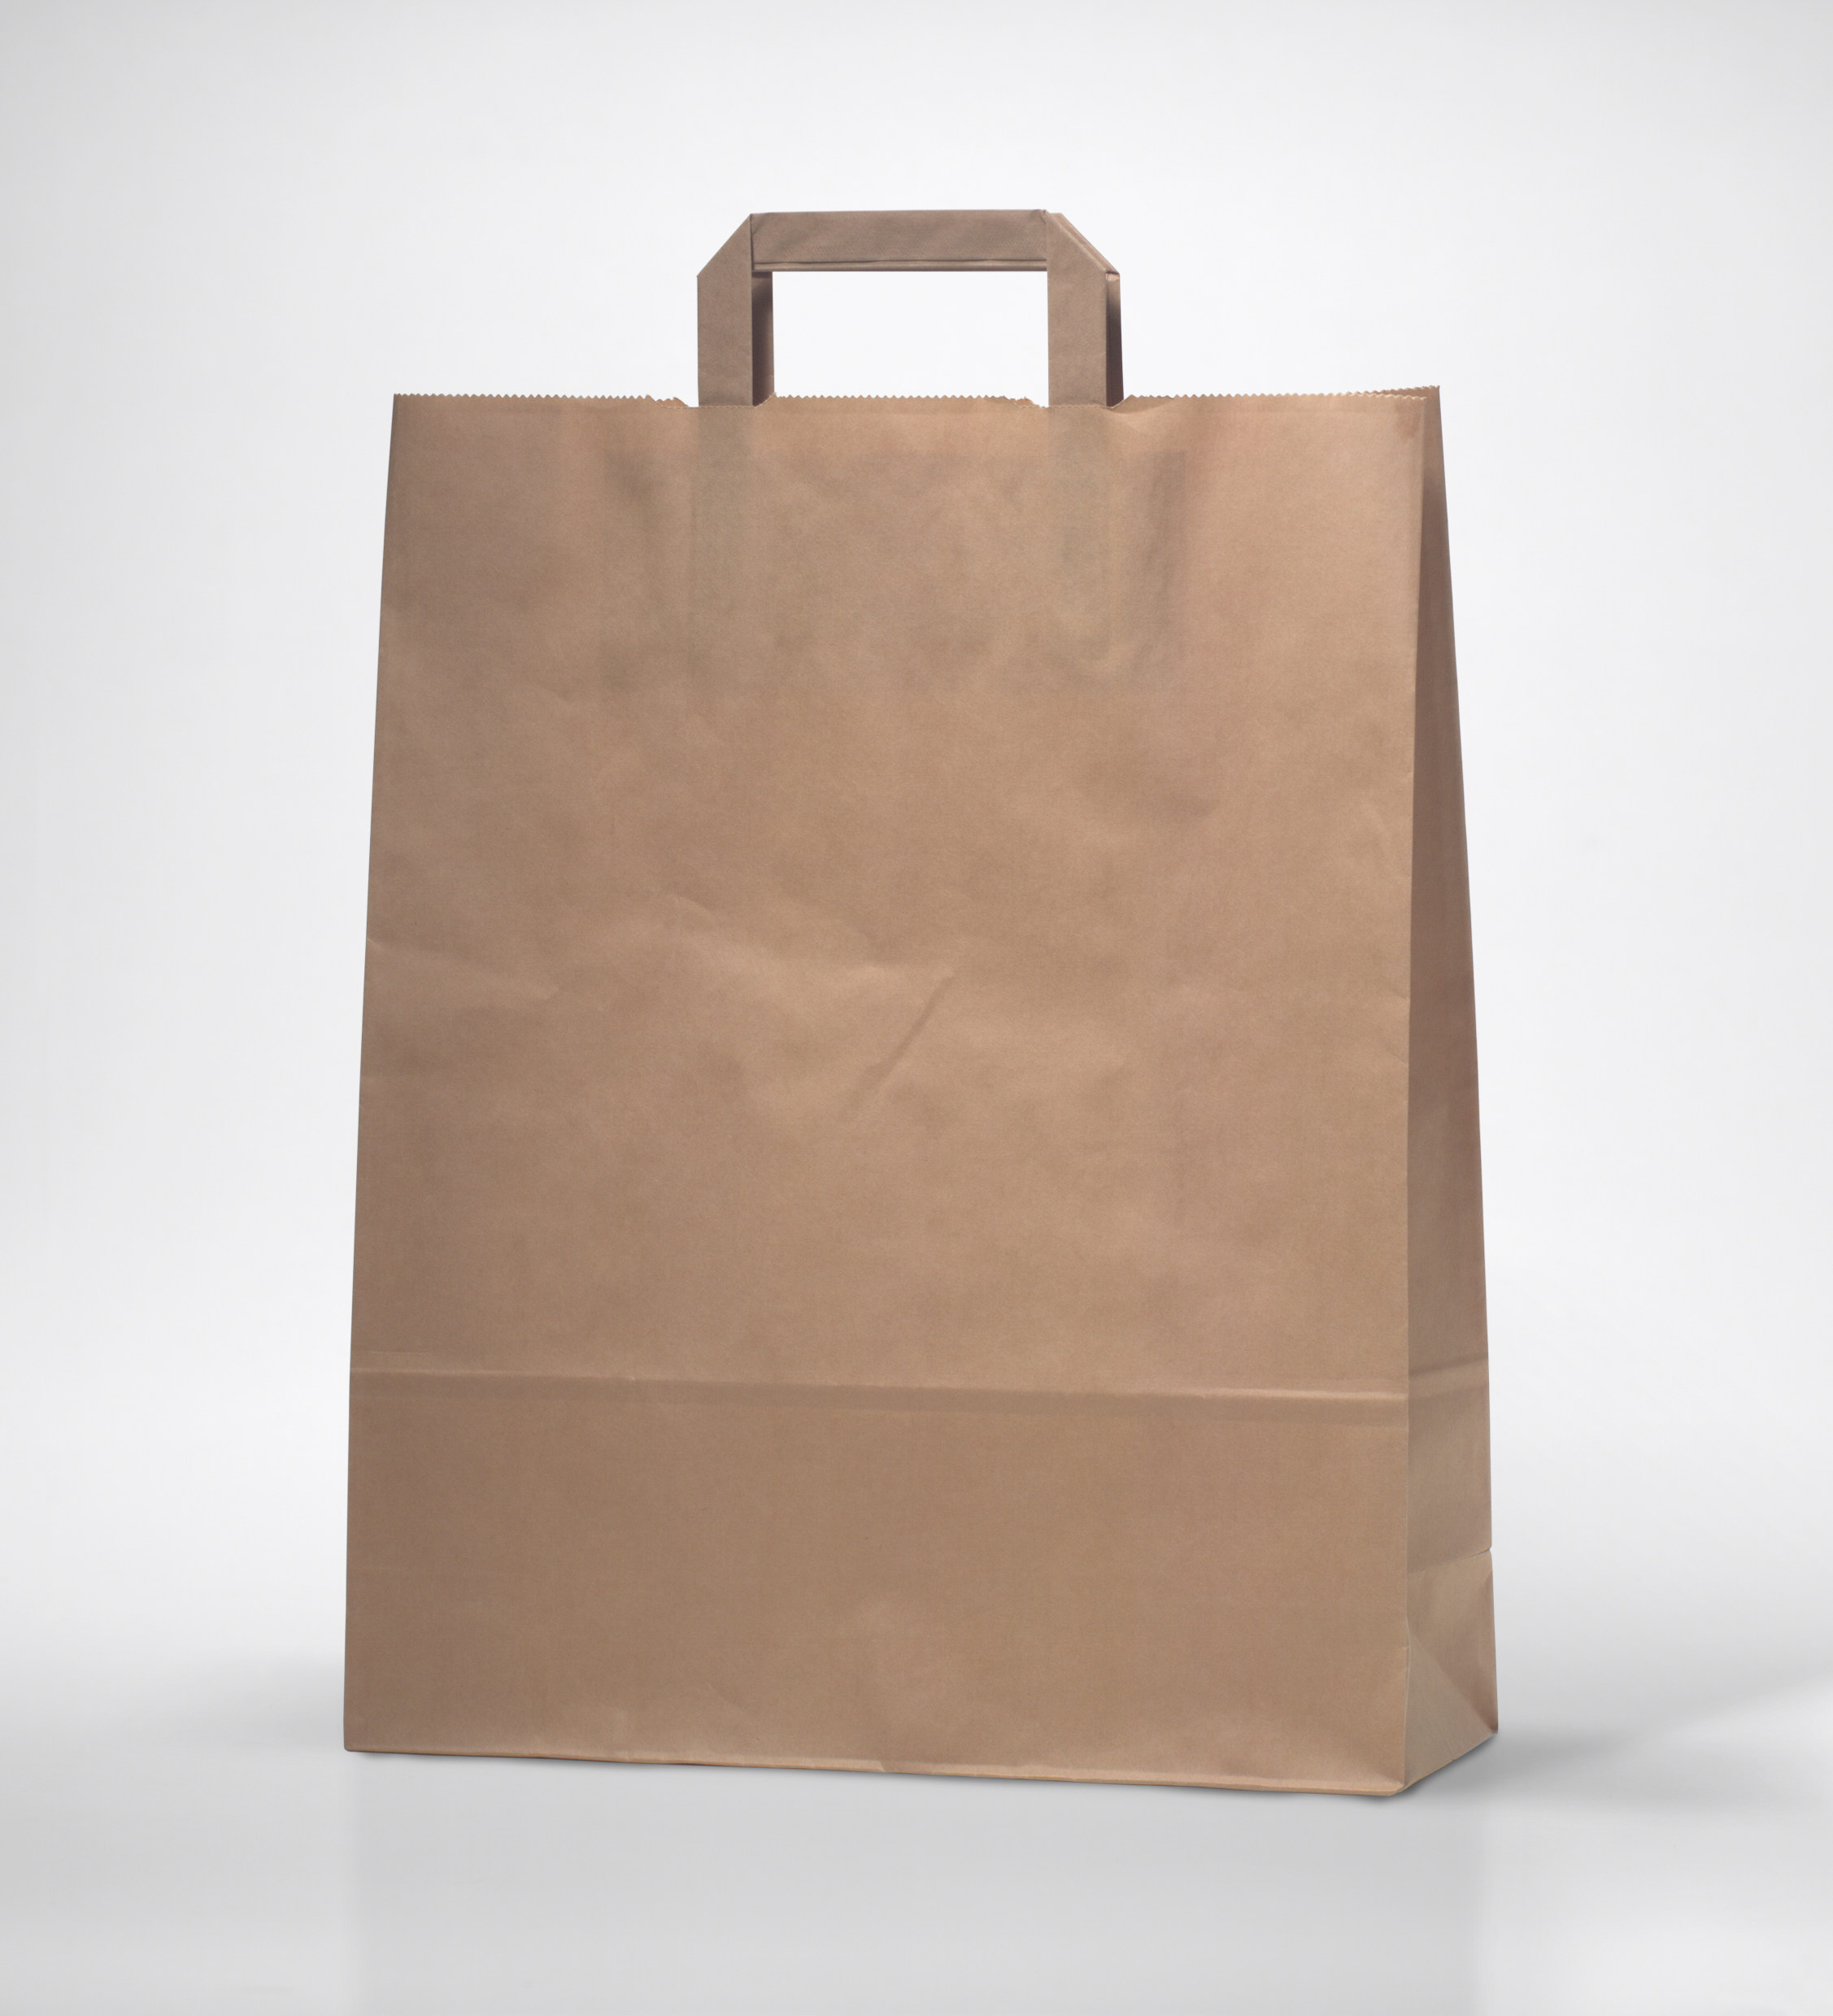 Blank paper bags 1084 - Blank item - Others